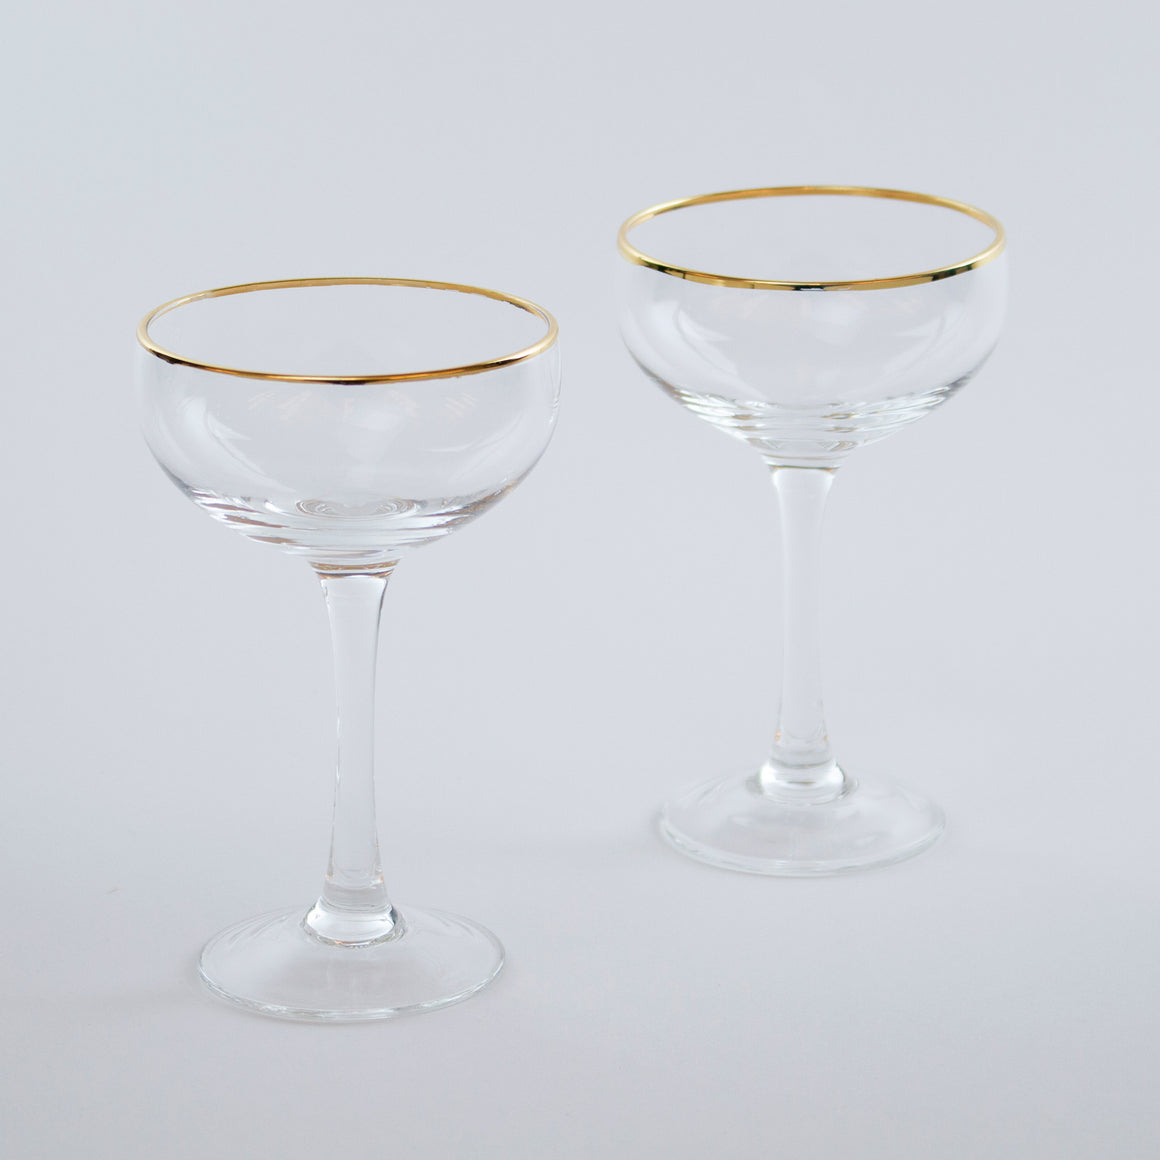 Leopold Gold-Rimmed Tasting Coupe (Set of 6)